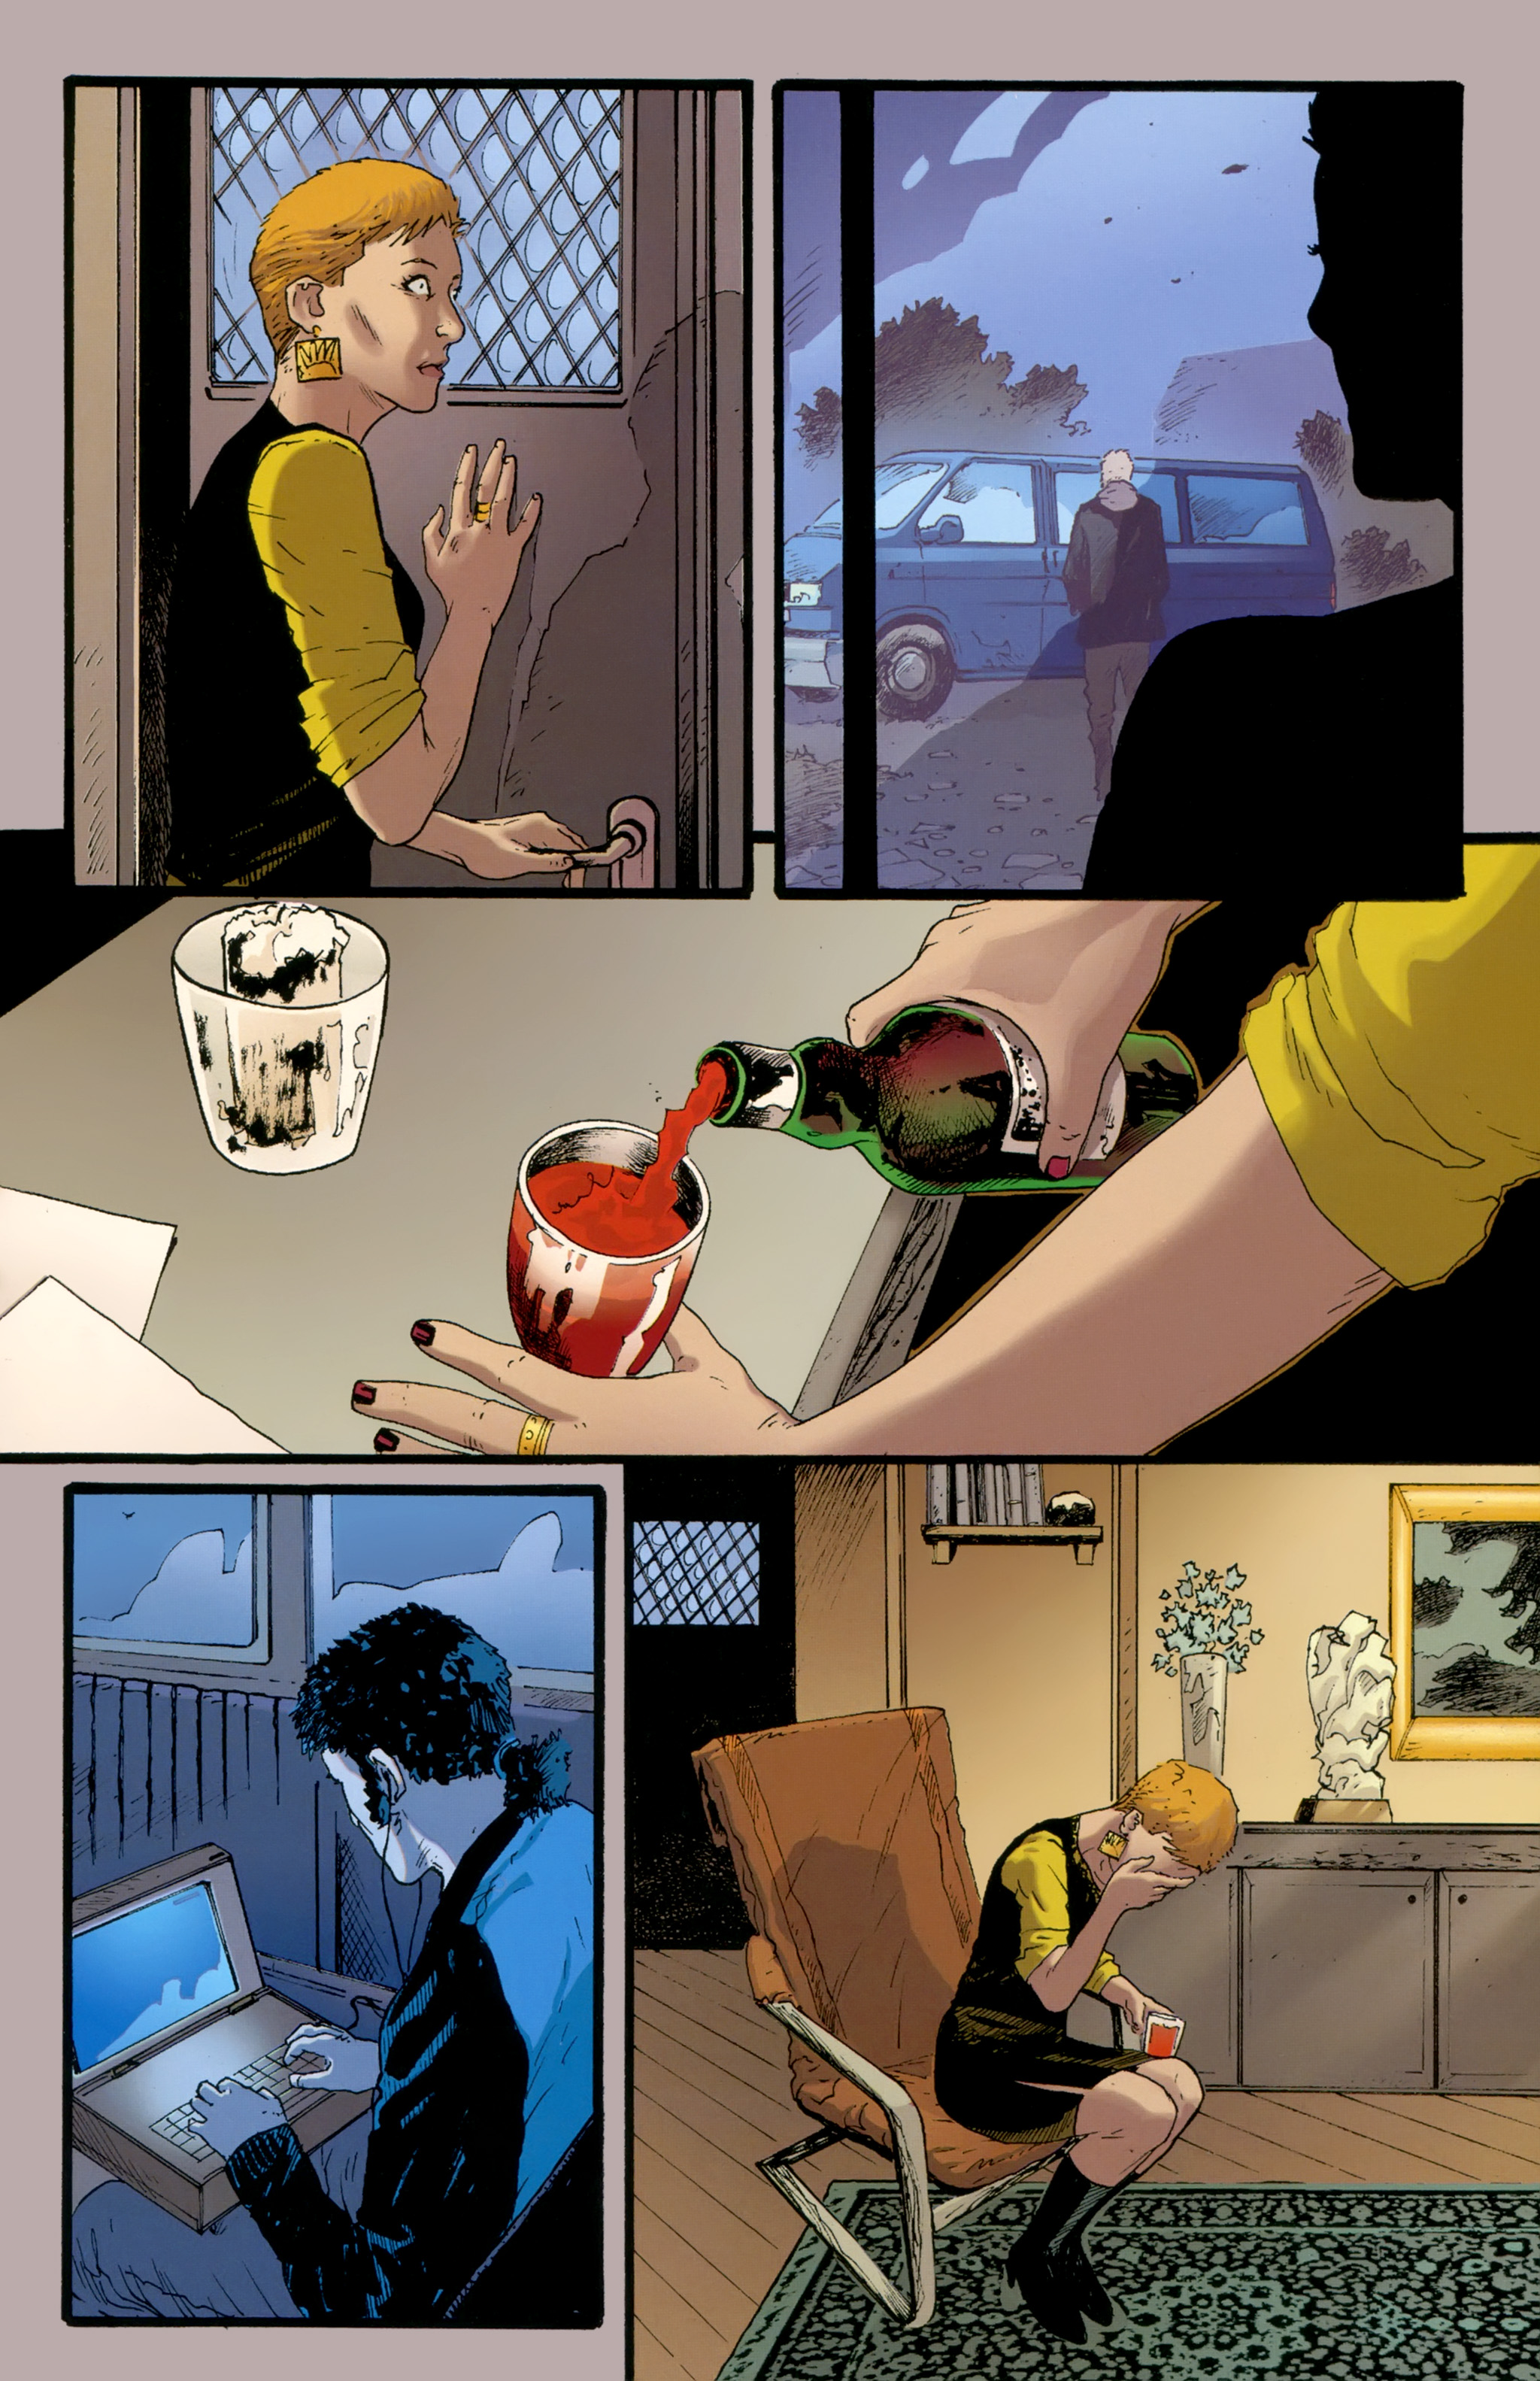 Read online The Girl With the Dragon Tattoo comic -  Issue # TPB 2 - 129